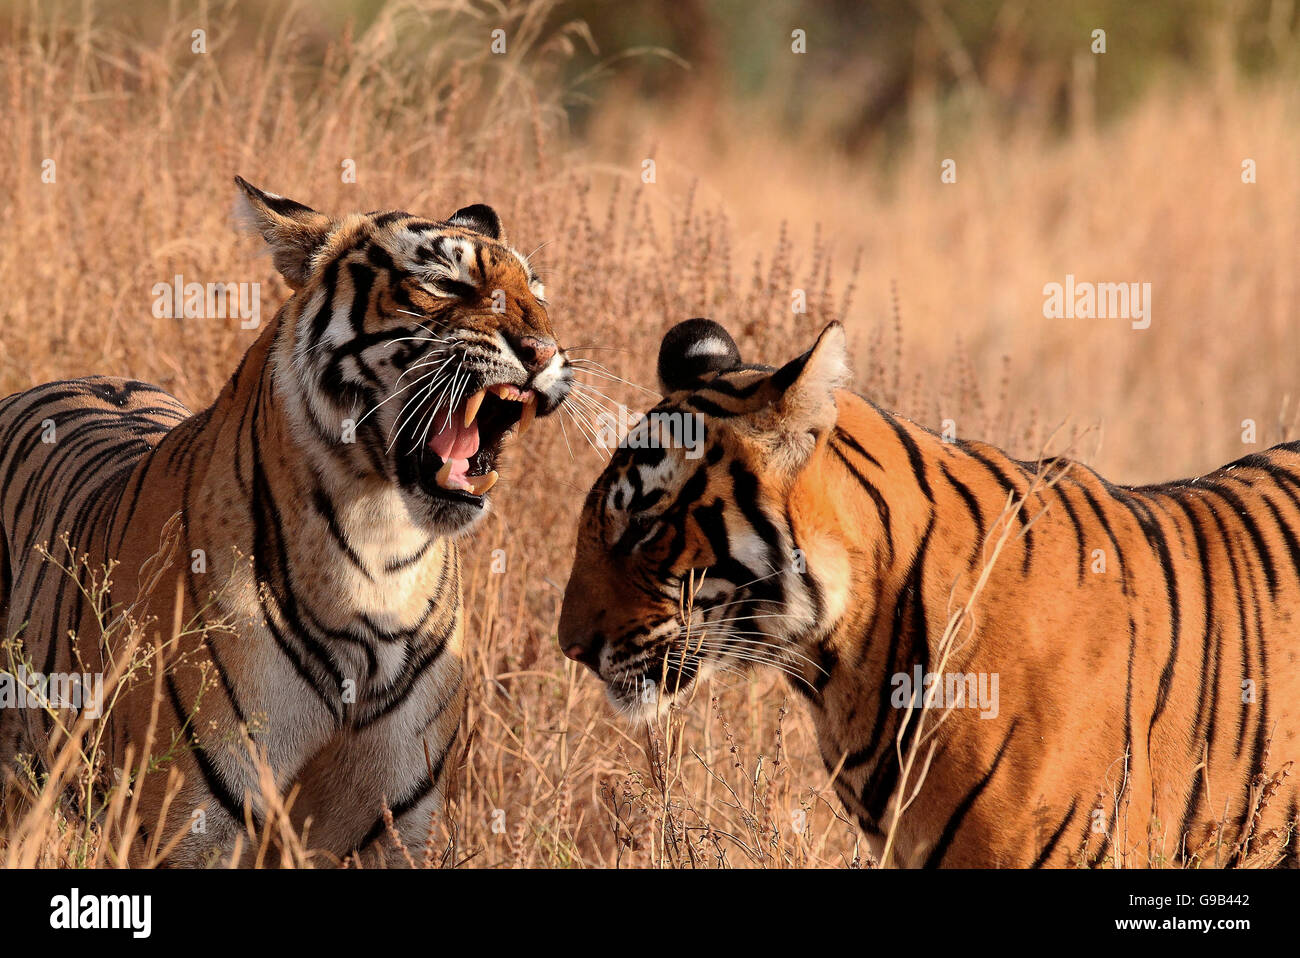 Angry Royal Bengal Tigress snarling at her sub adult cub - Stock Image